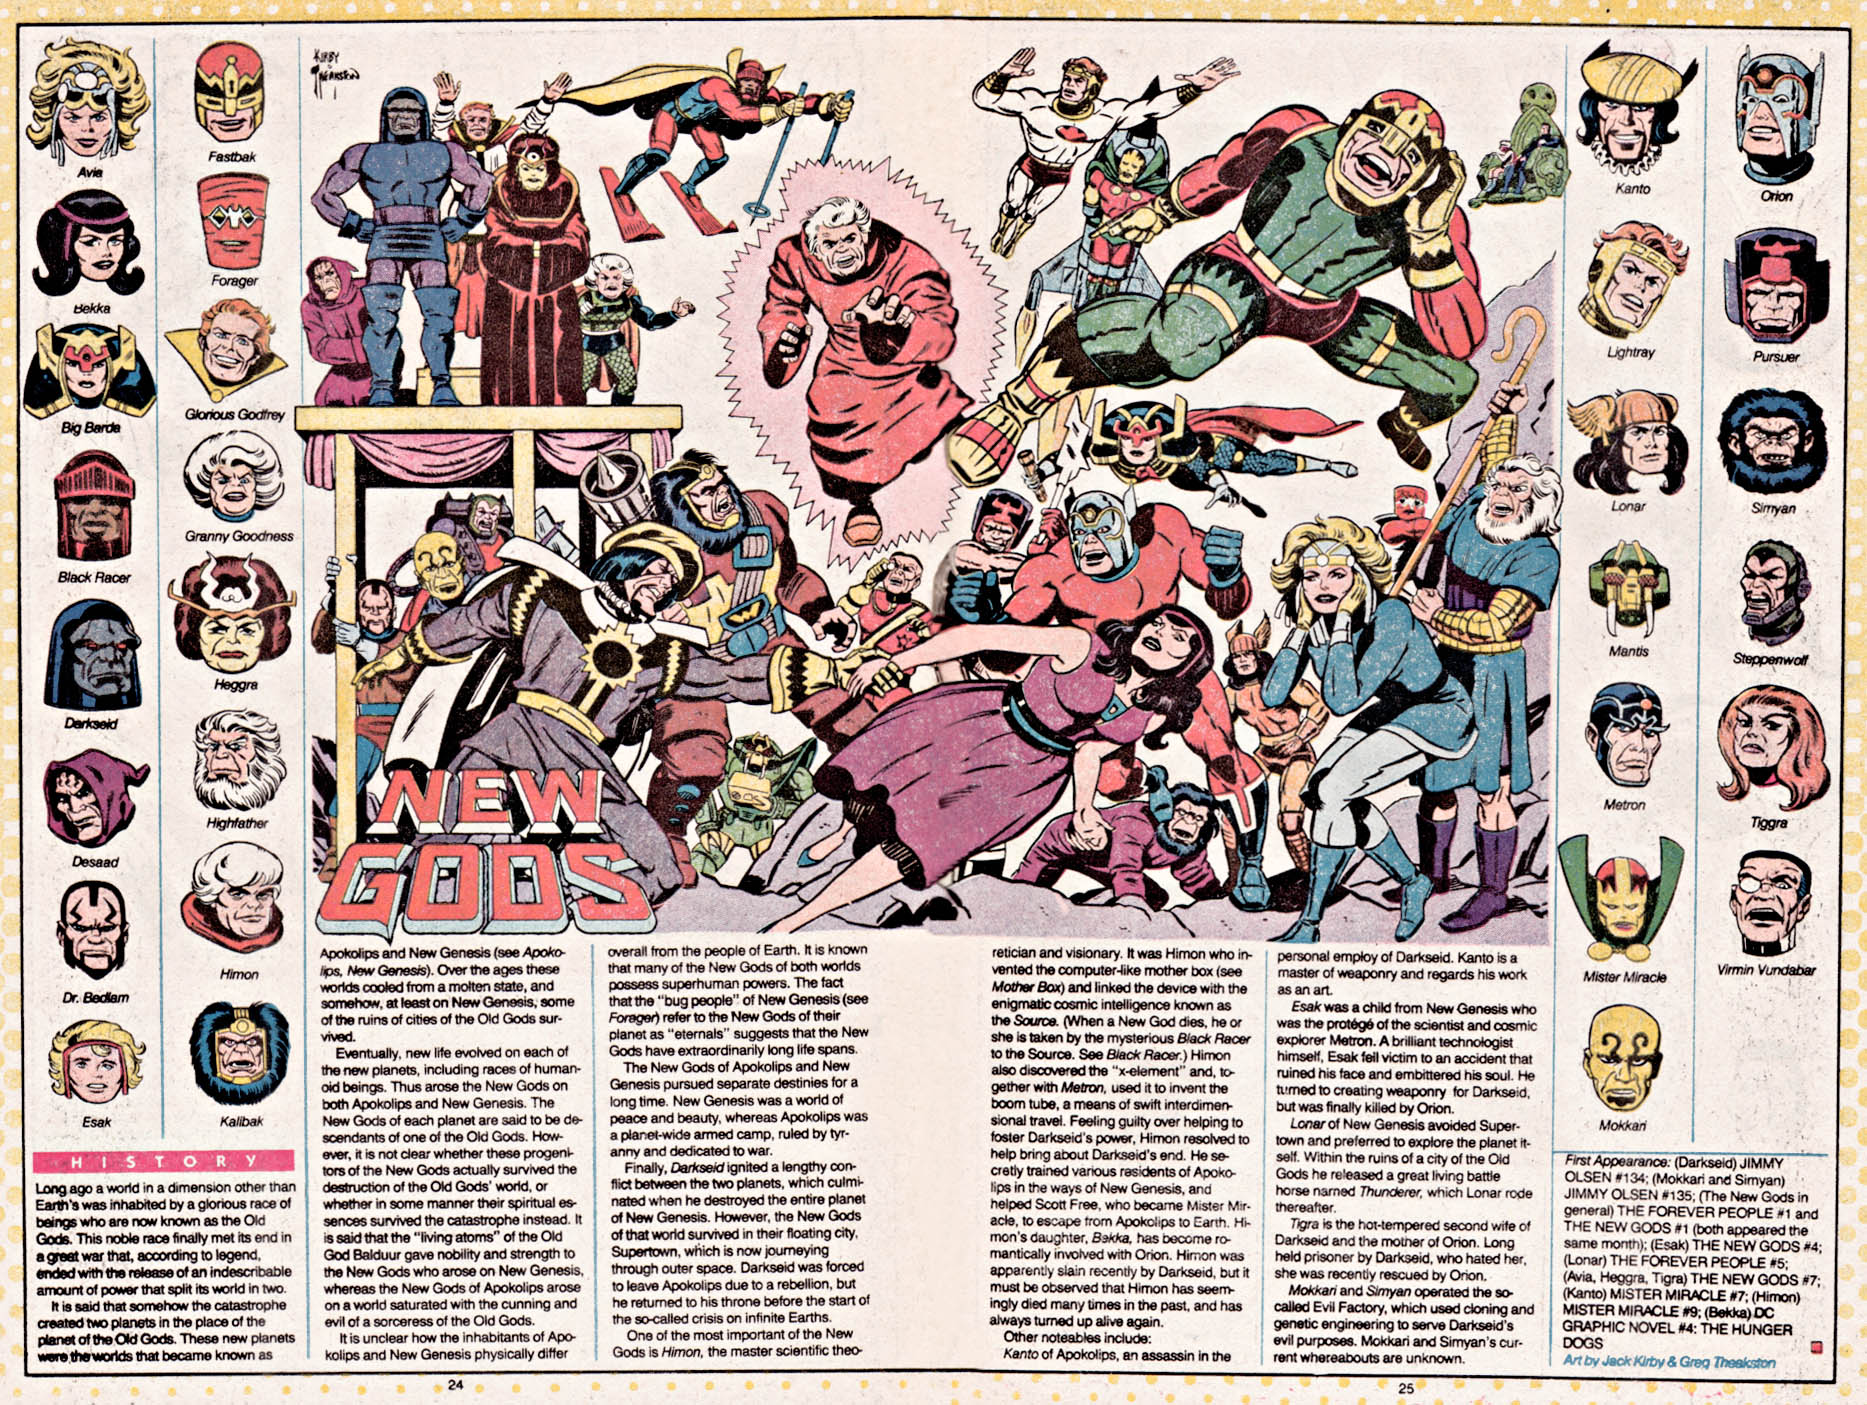 New Gods from Who's Who by Jack Kirby